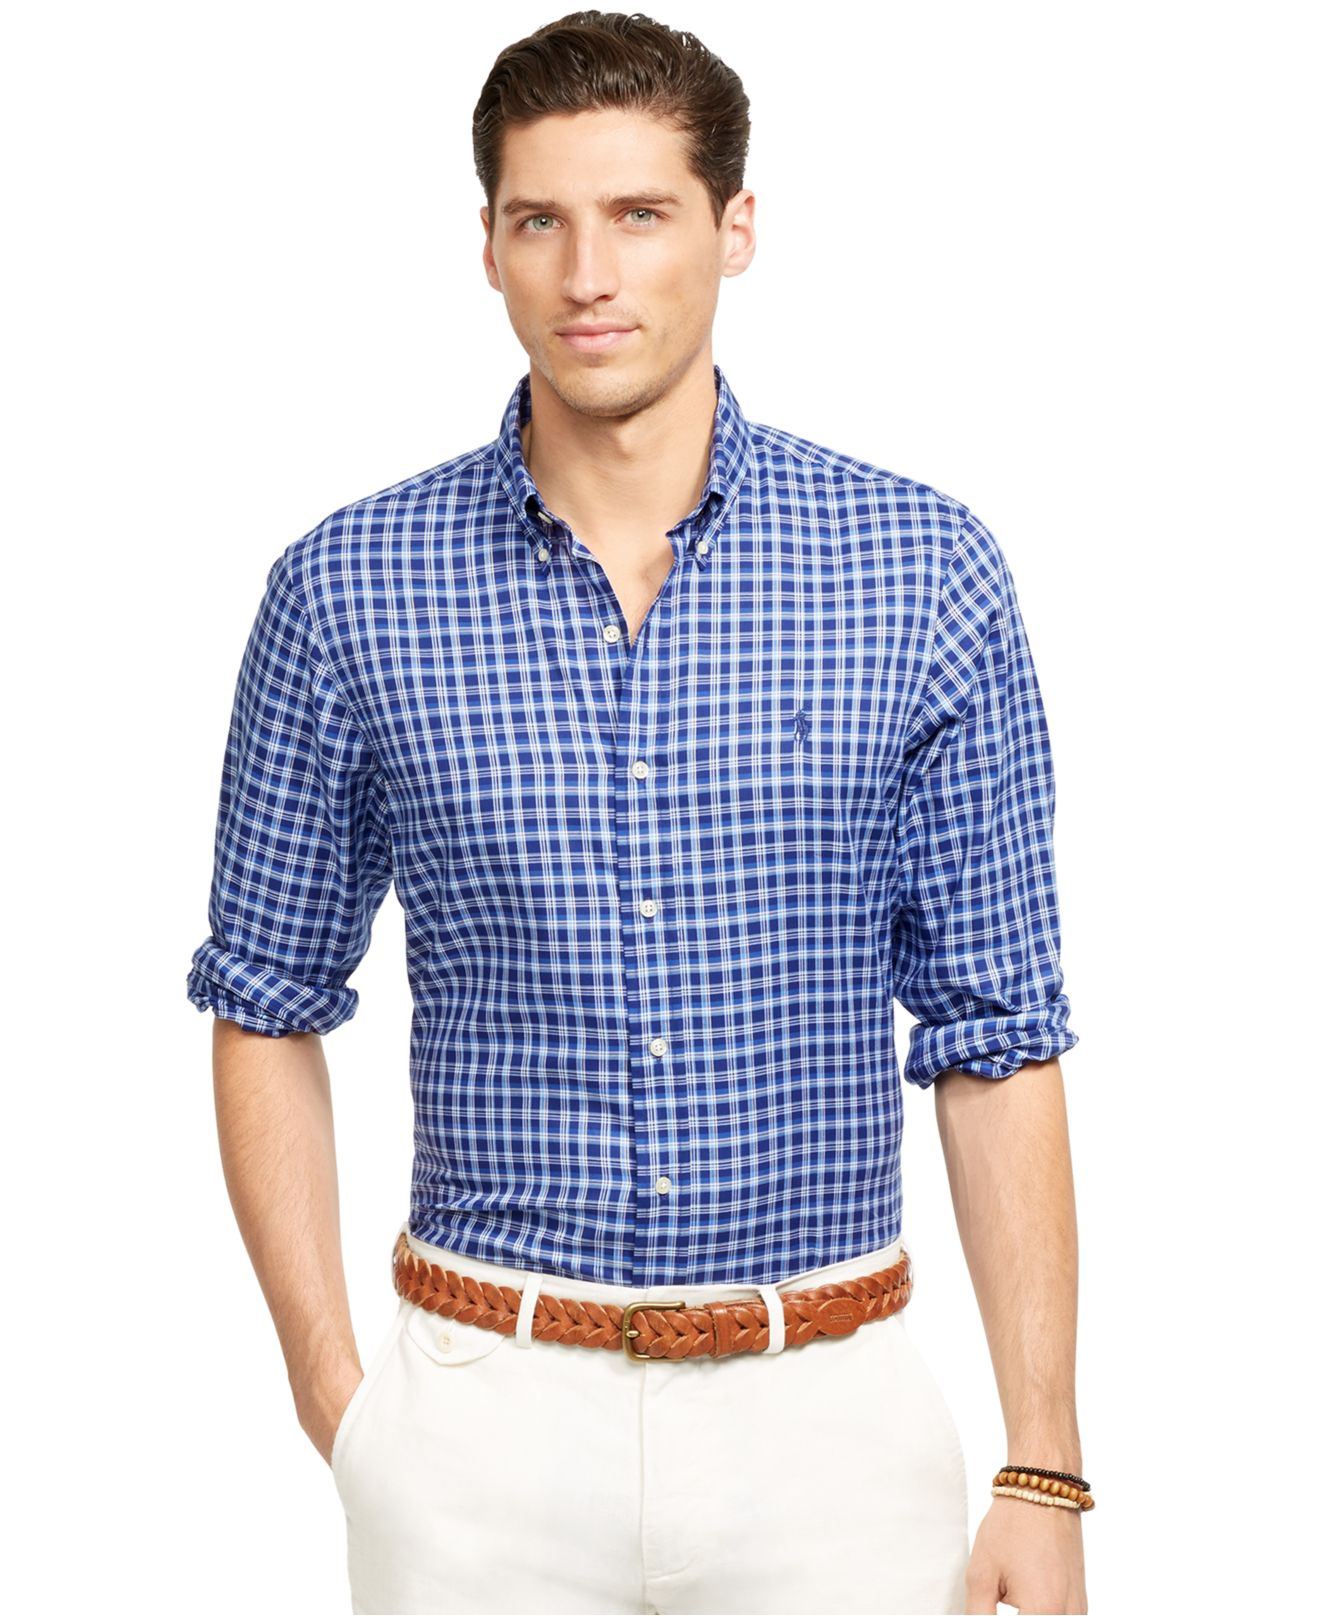 d4244ecb91ac ... cheapest lyst polo ralph lauren plaid oxford shirt in blue for men  6c1ba e8190